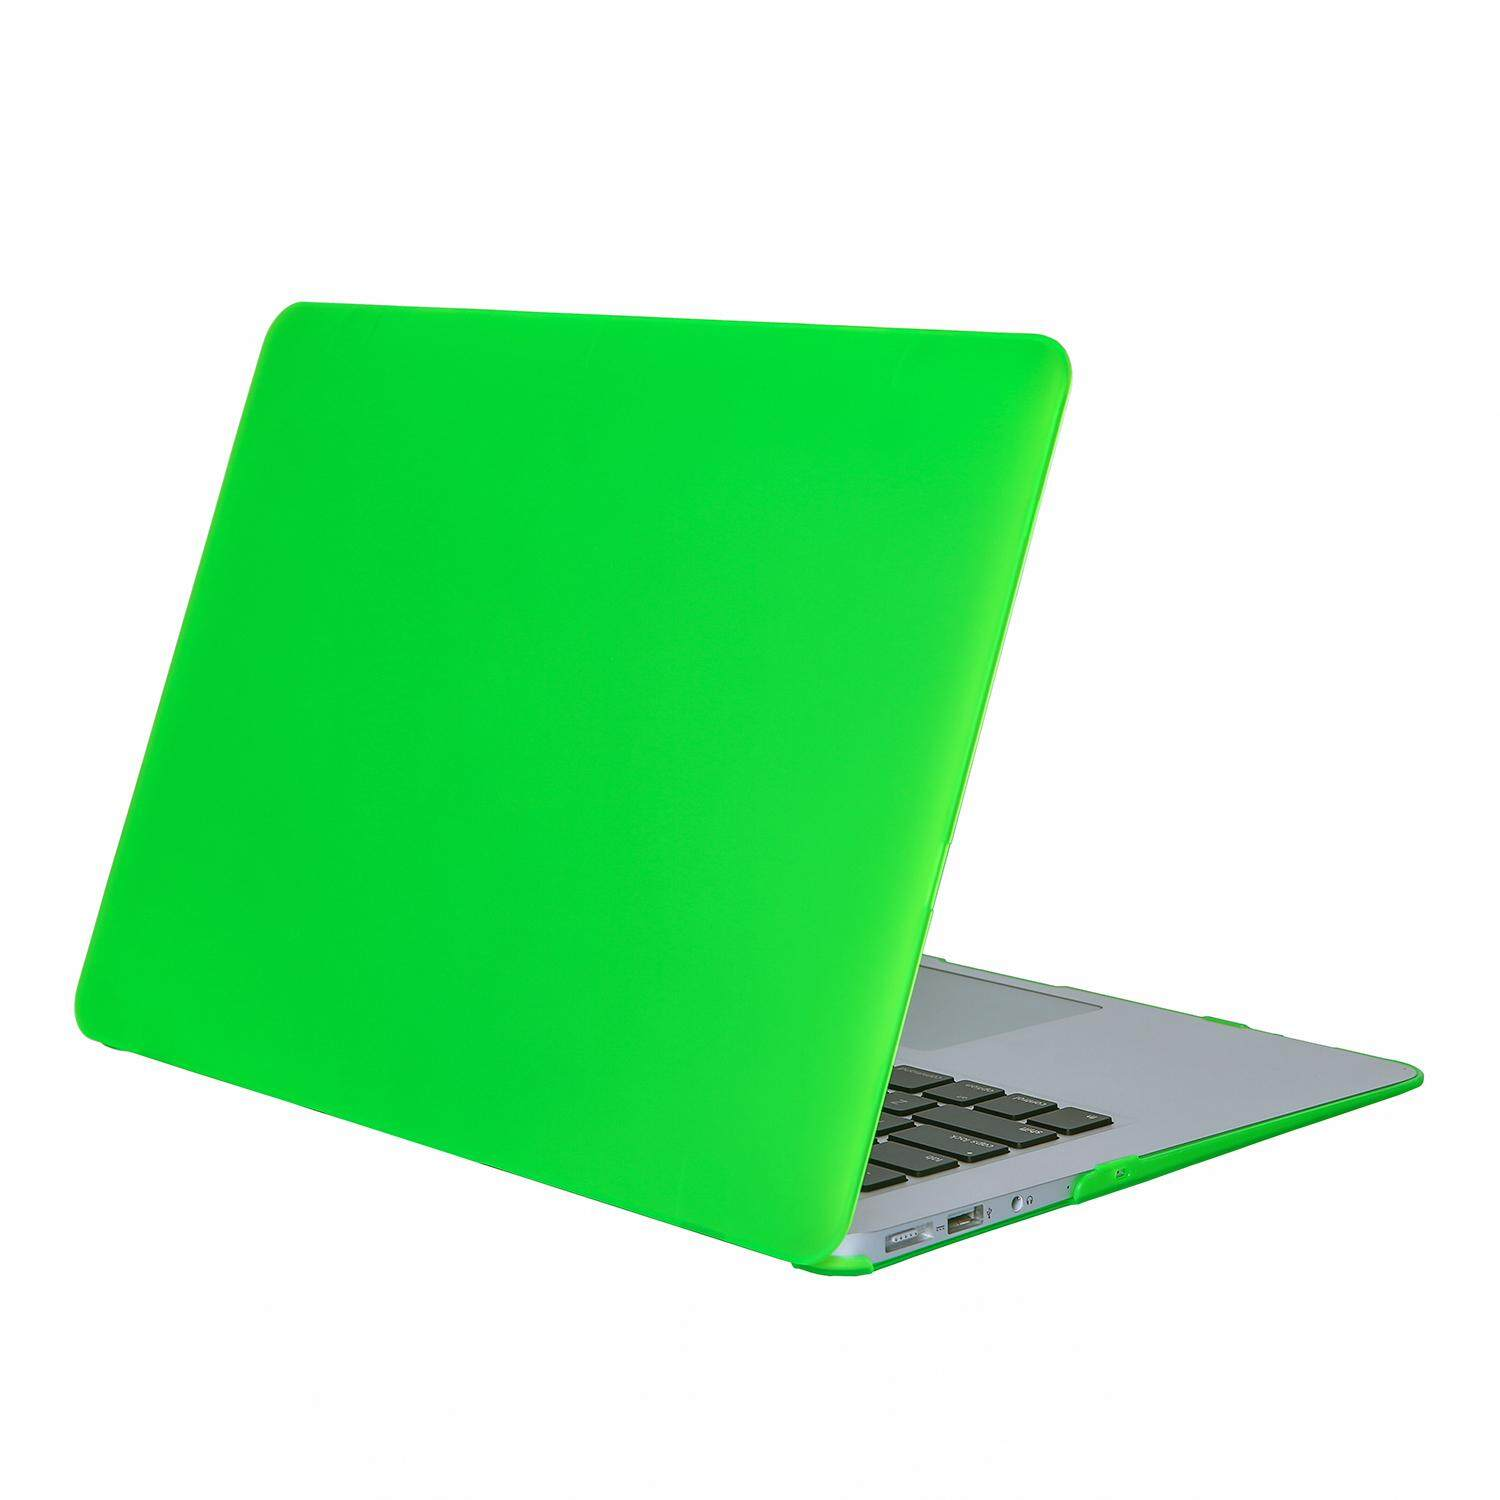 Clear Matte Rubberized Hard Case Cover for Macbook Air 13 inch Laptop Shell Green